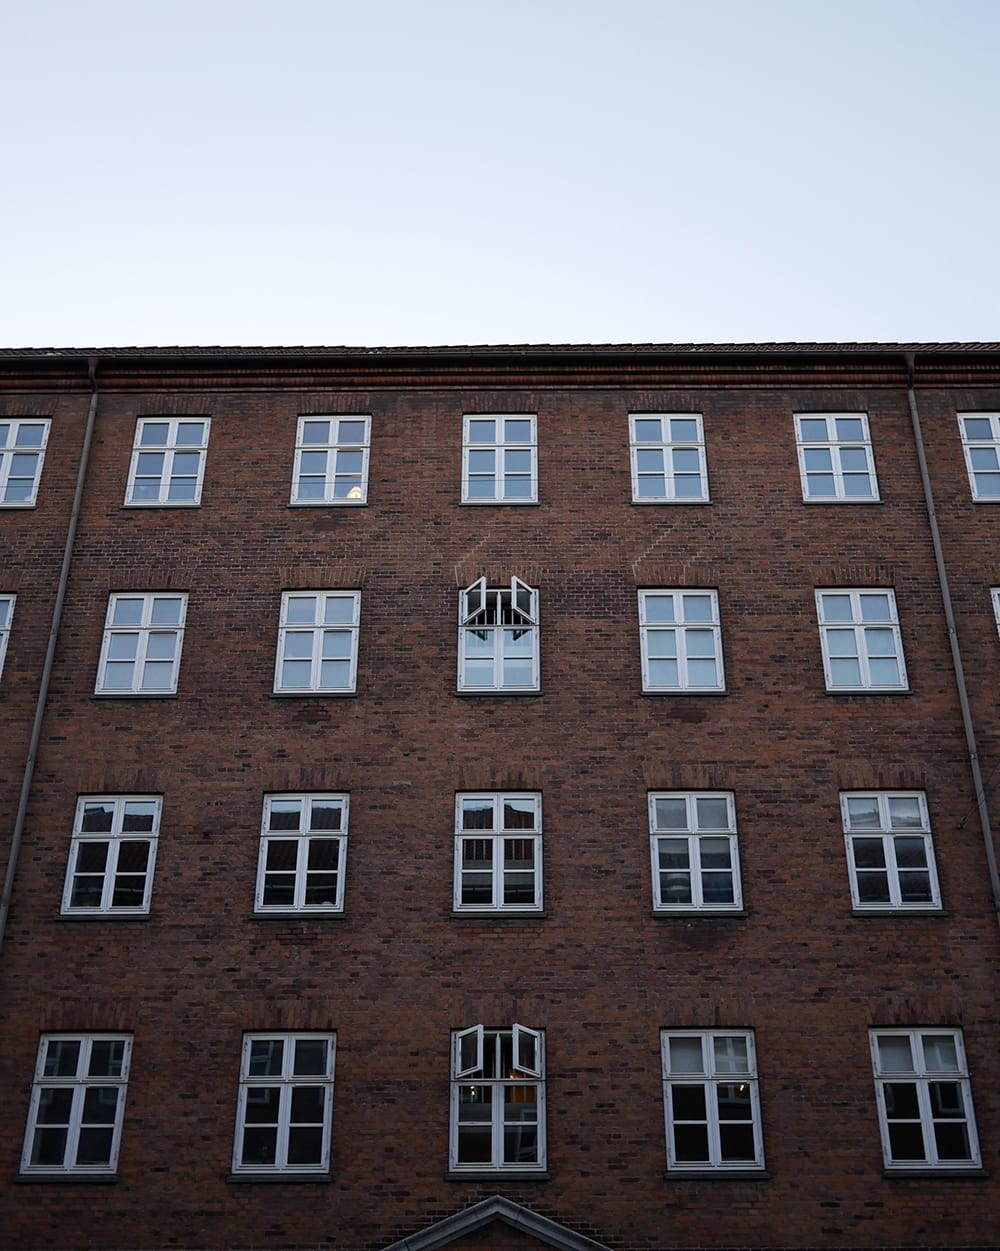 Old, classic tenement with one, opened window in the middle. Copenhagen